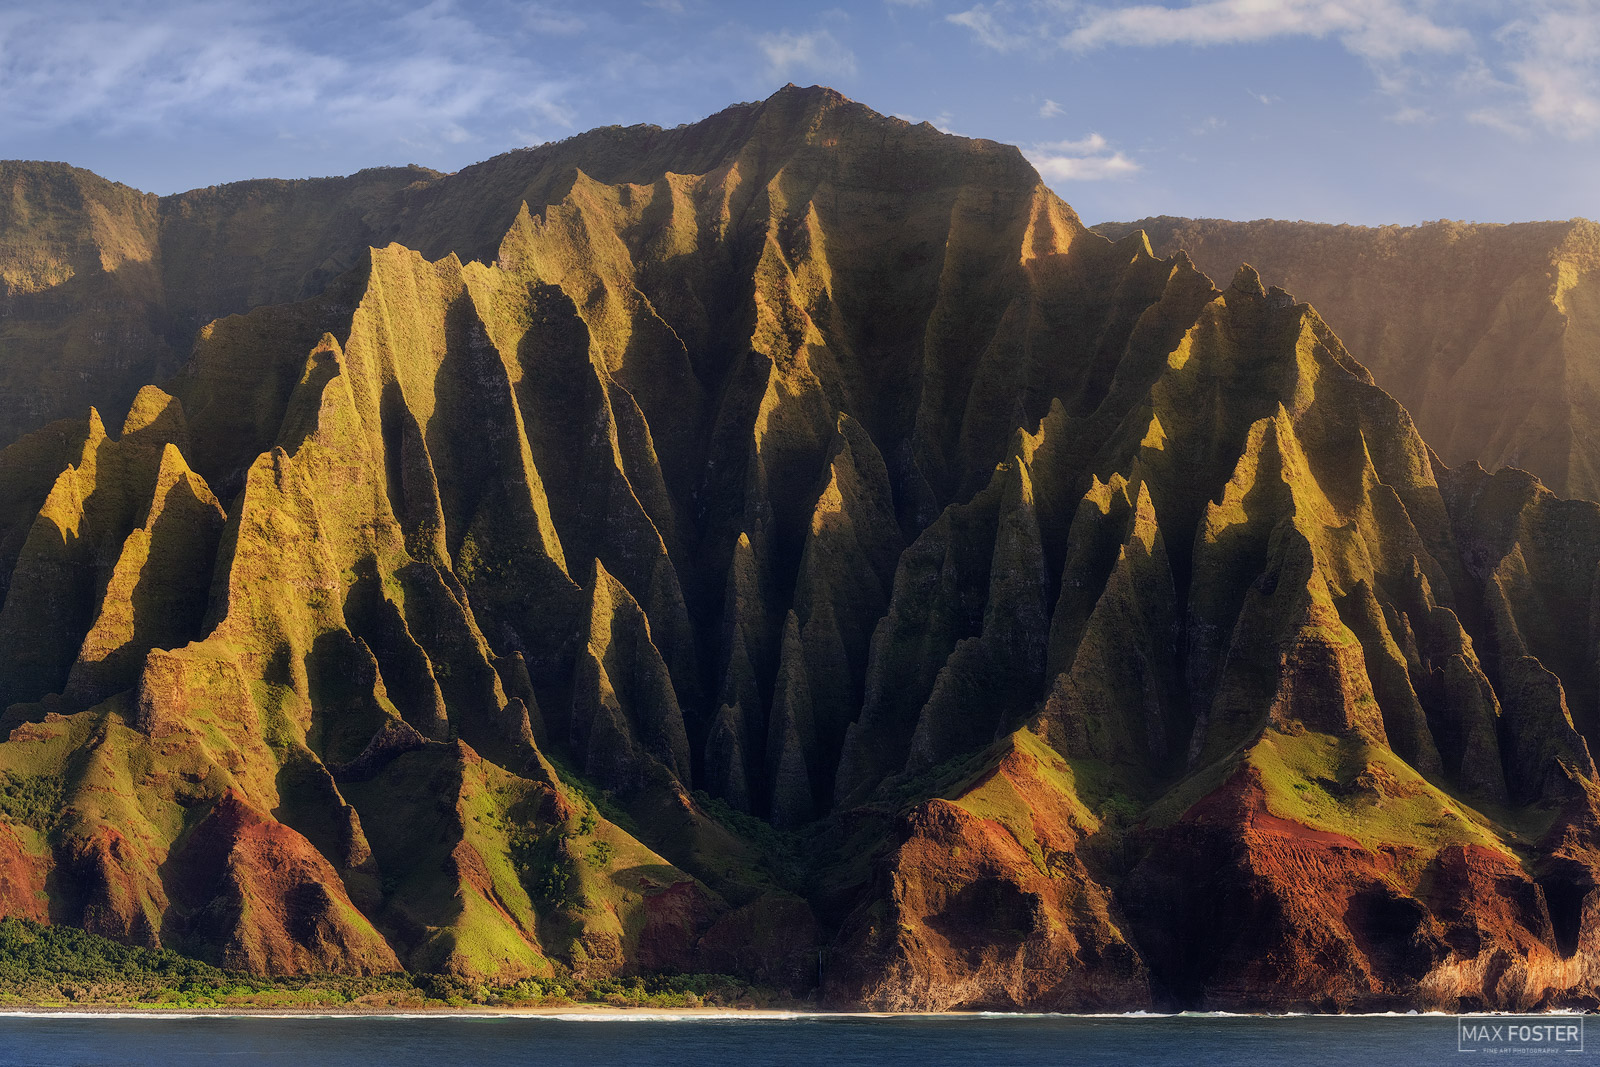 Fine Art Limited Edition of 50 The Nā Pali Coast State Park is a 6,175 acres Hawaiian state park located in the center of the...